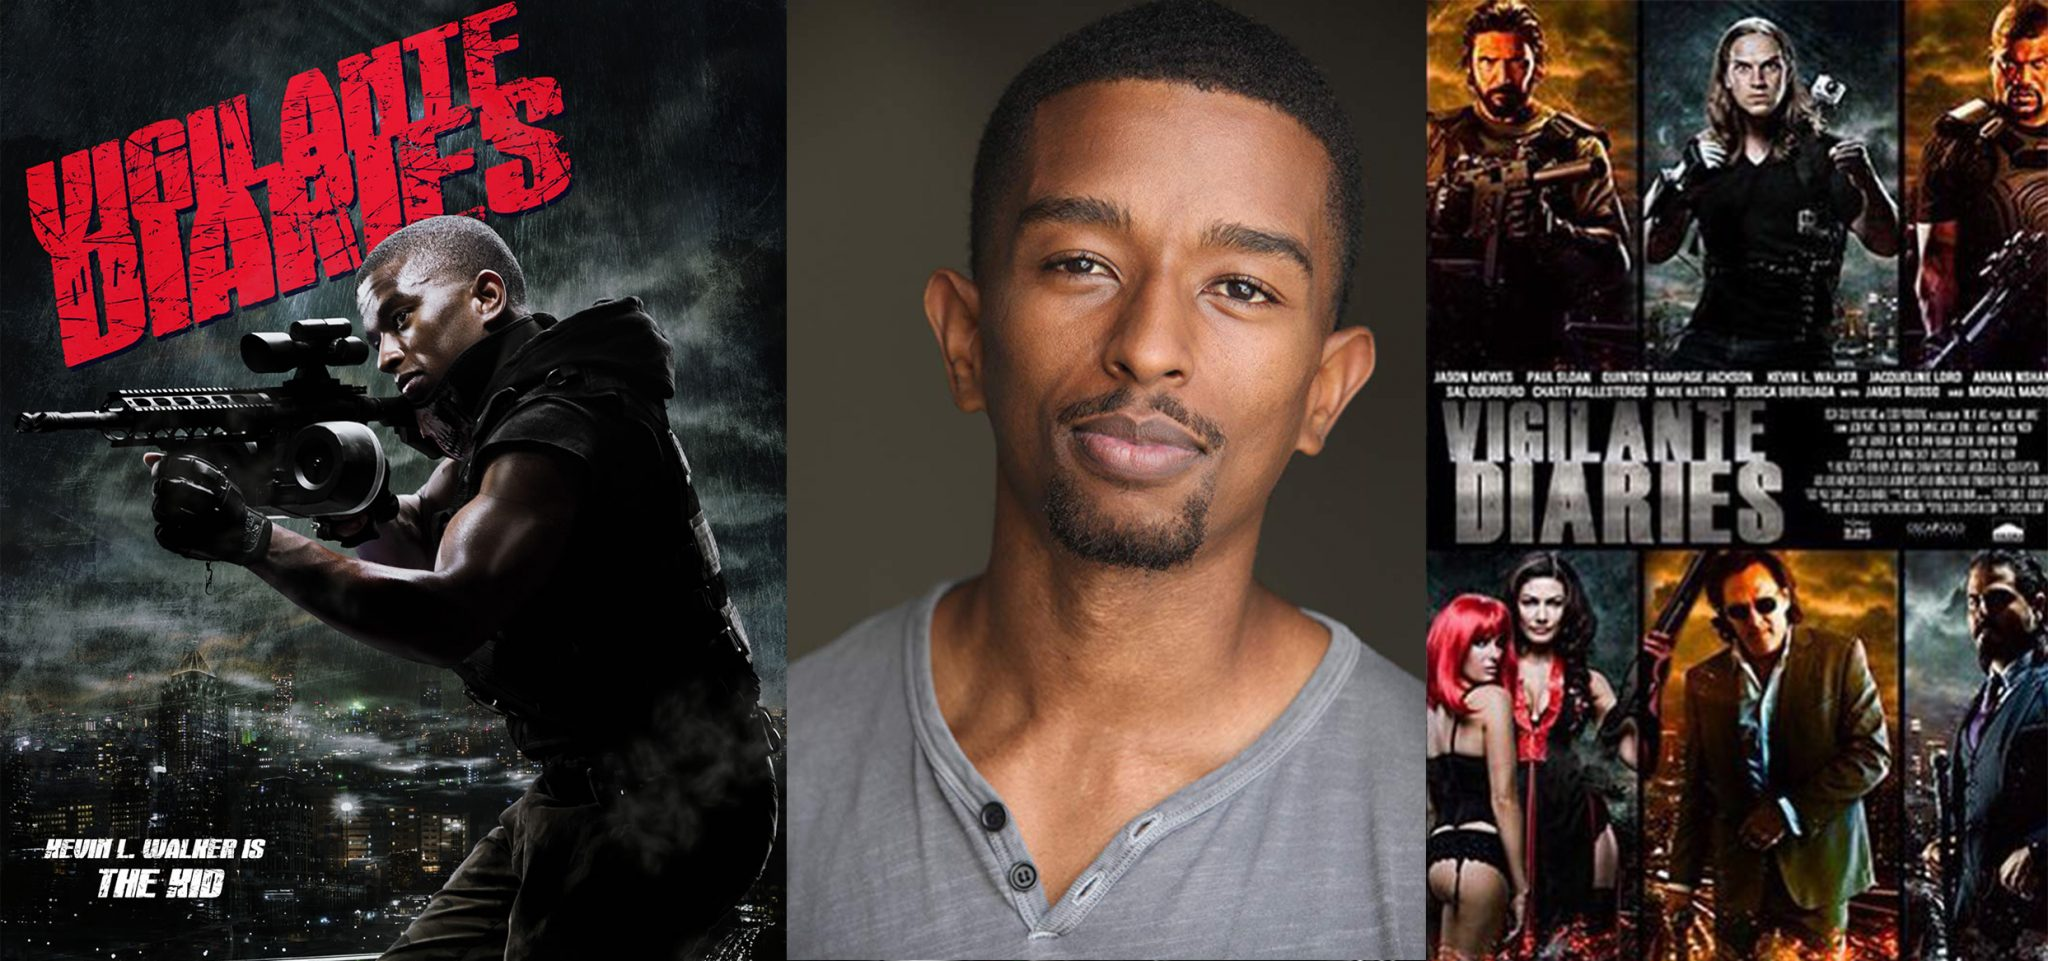 Vigilante Diaries Star Kevin L. Walker is Awarded $257,000 in Federal Court for Anchor Bay Film